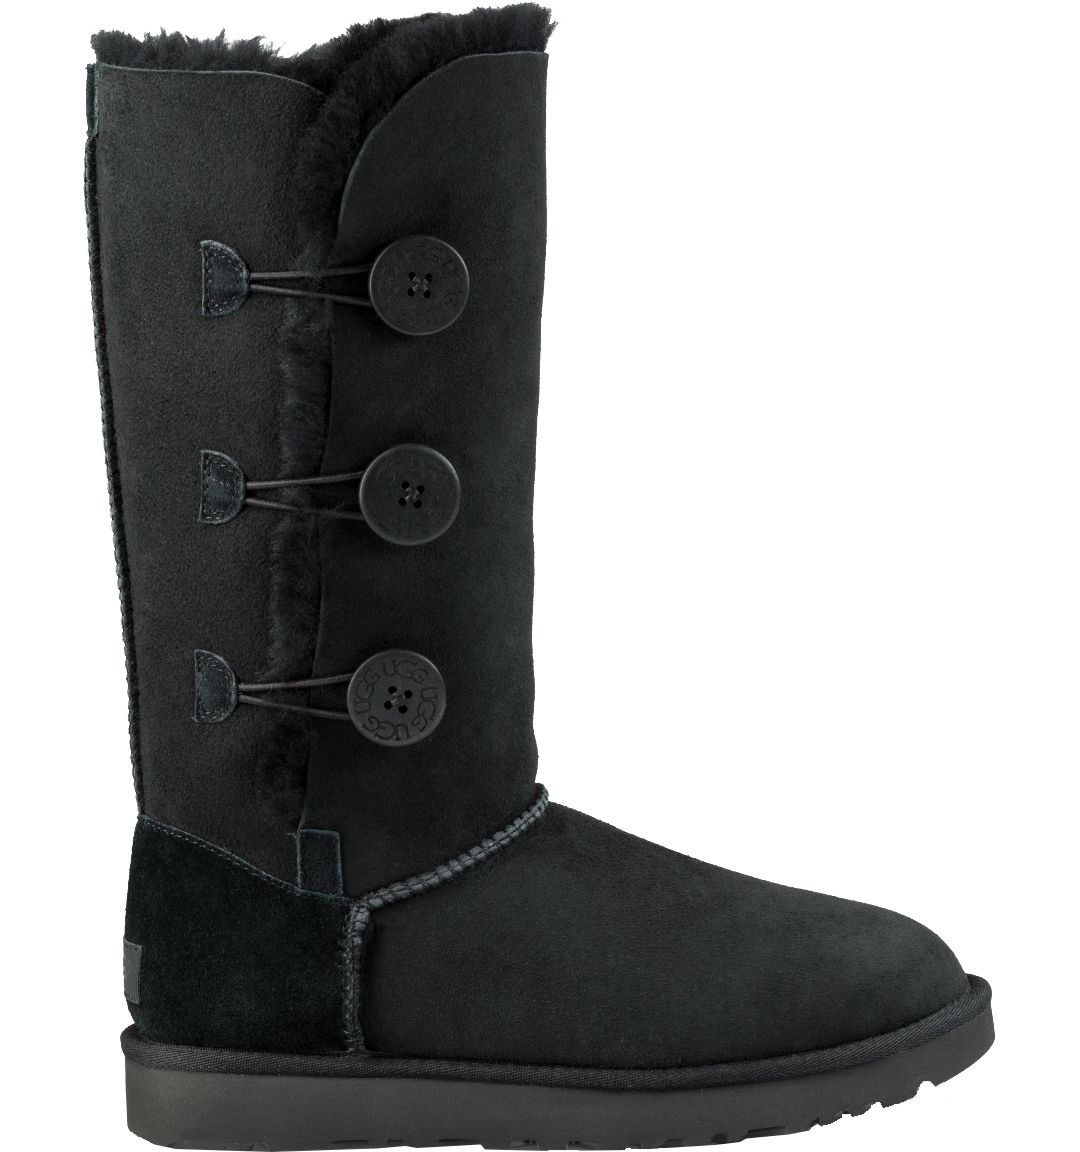 437430c5fb4 UGG Australia Women's Bailey Button Triplet II Winter Boots